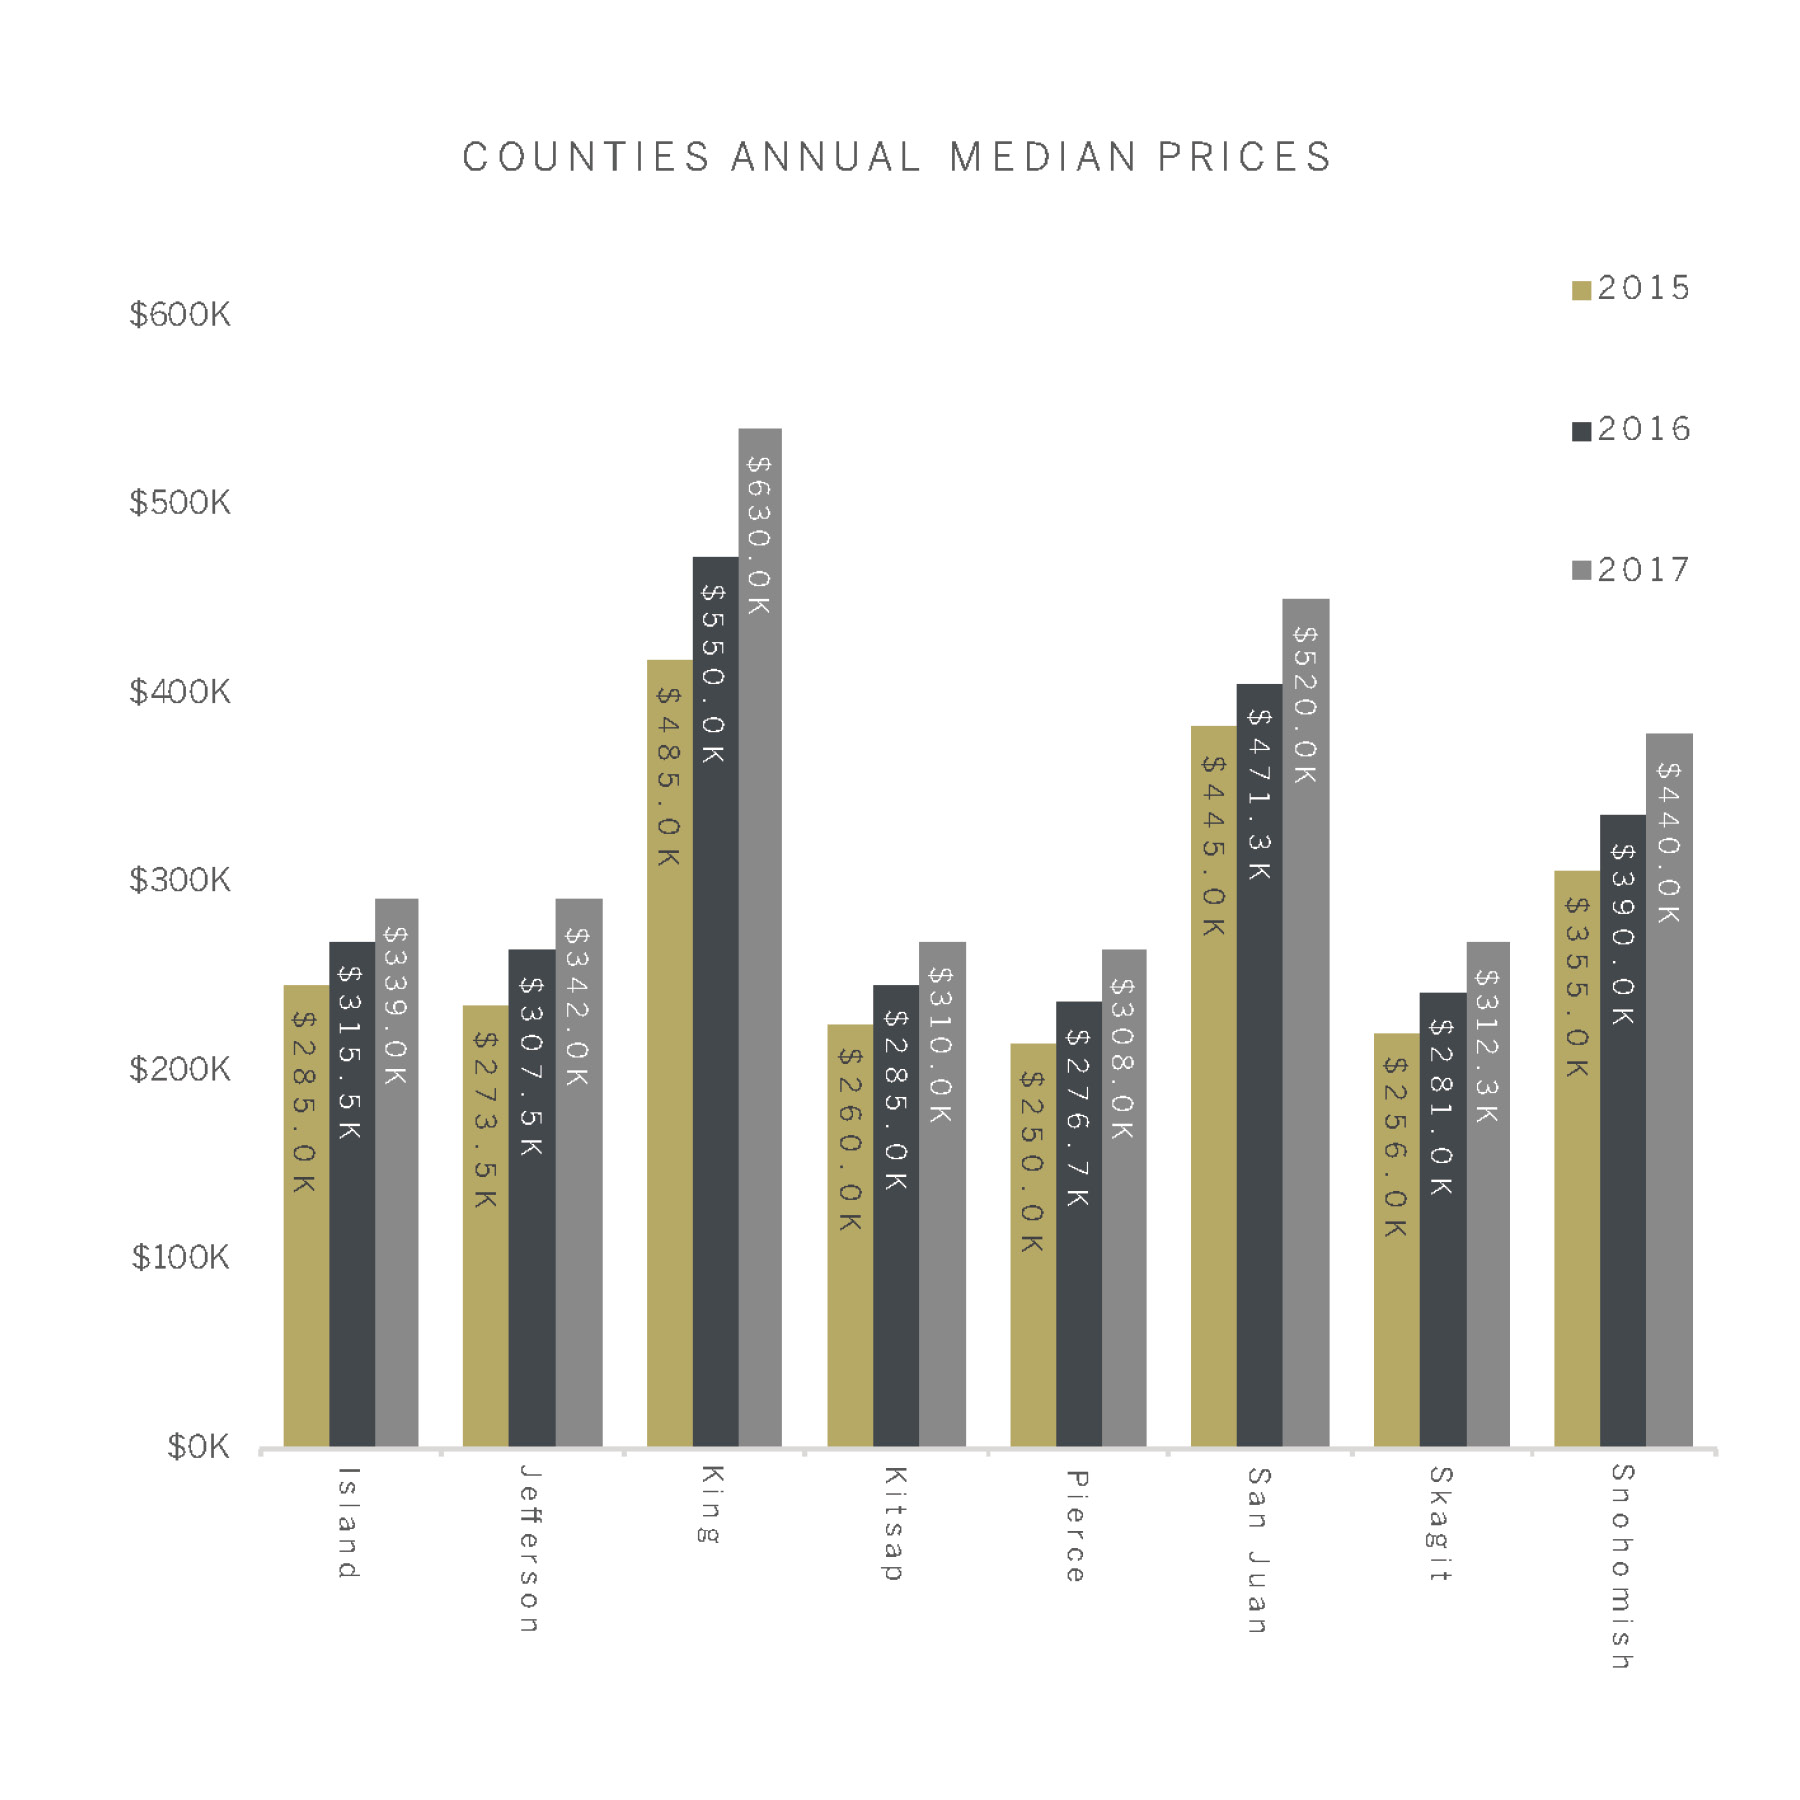 Counties-Prices.jpg